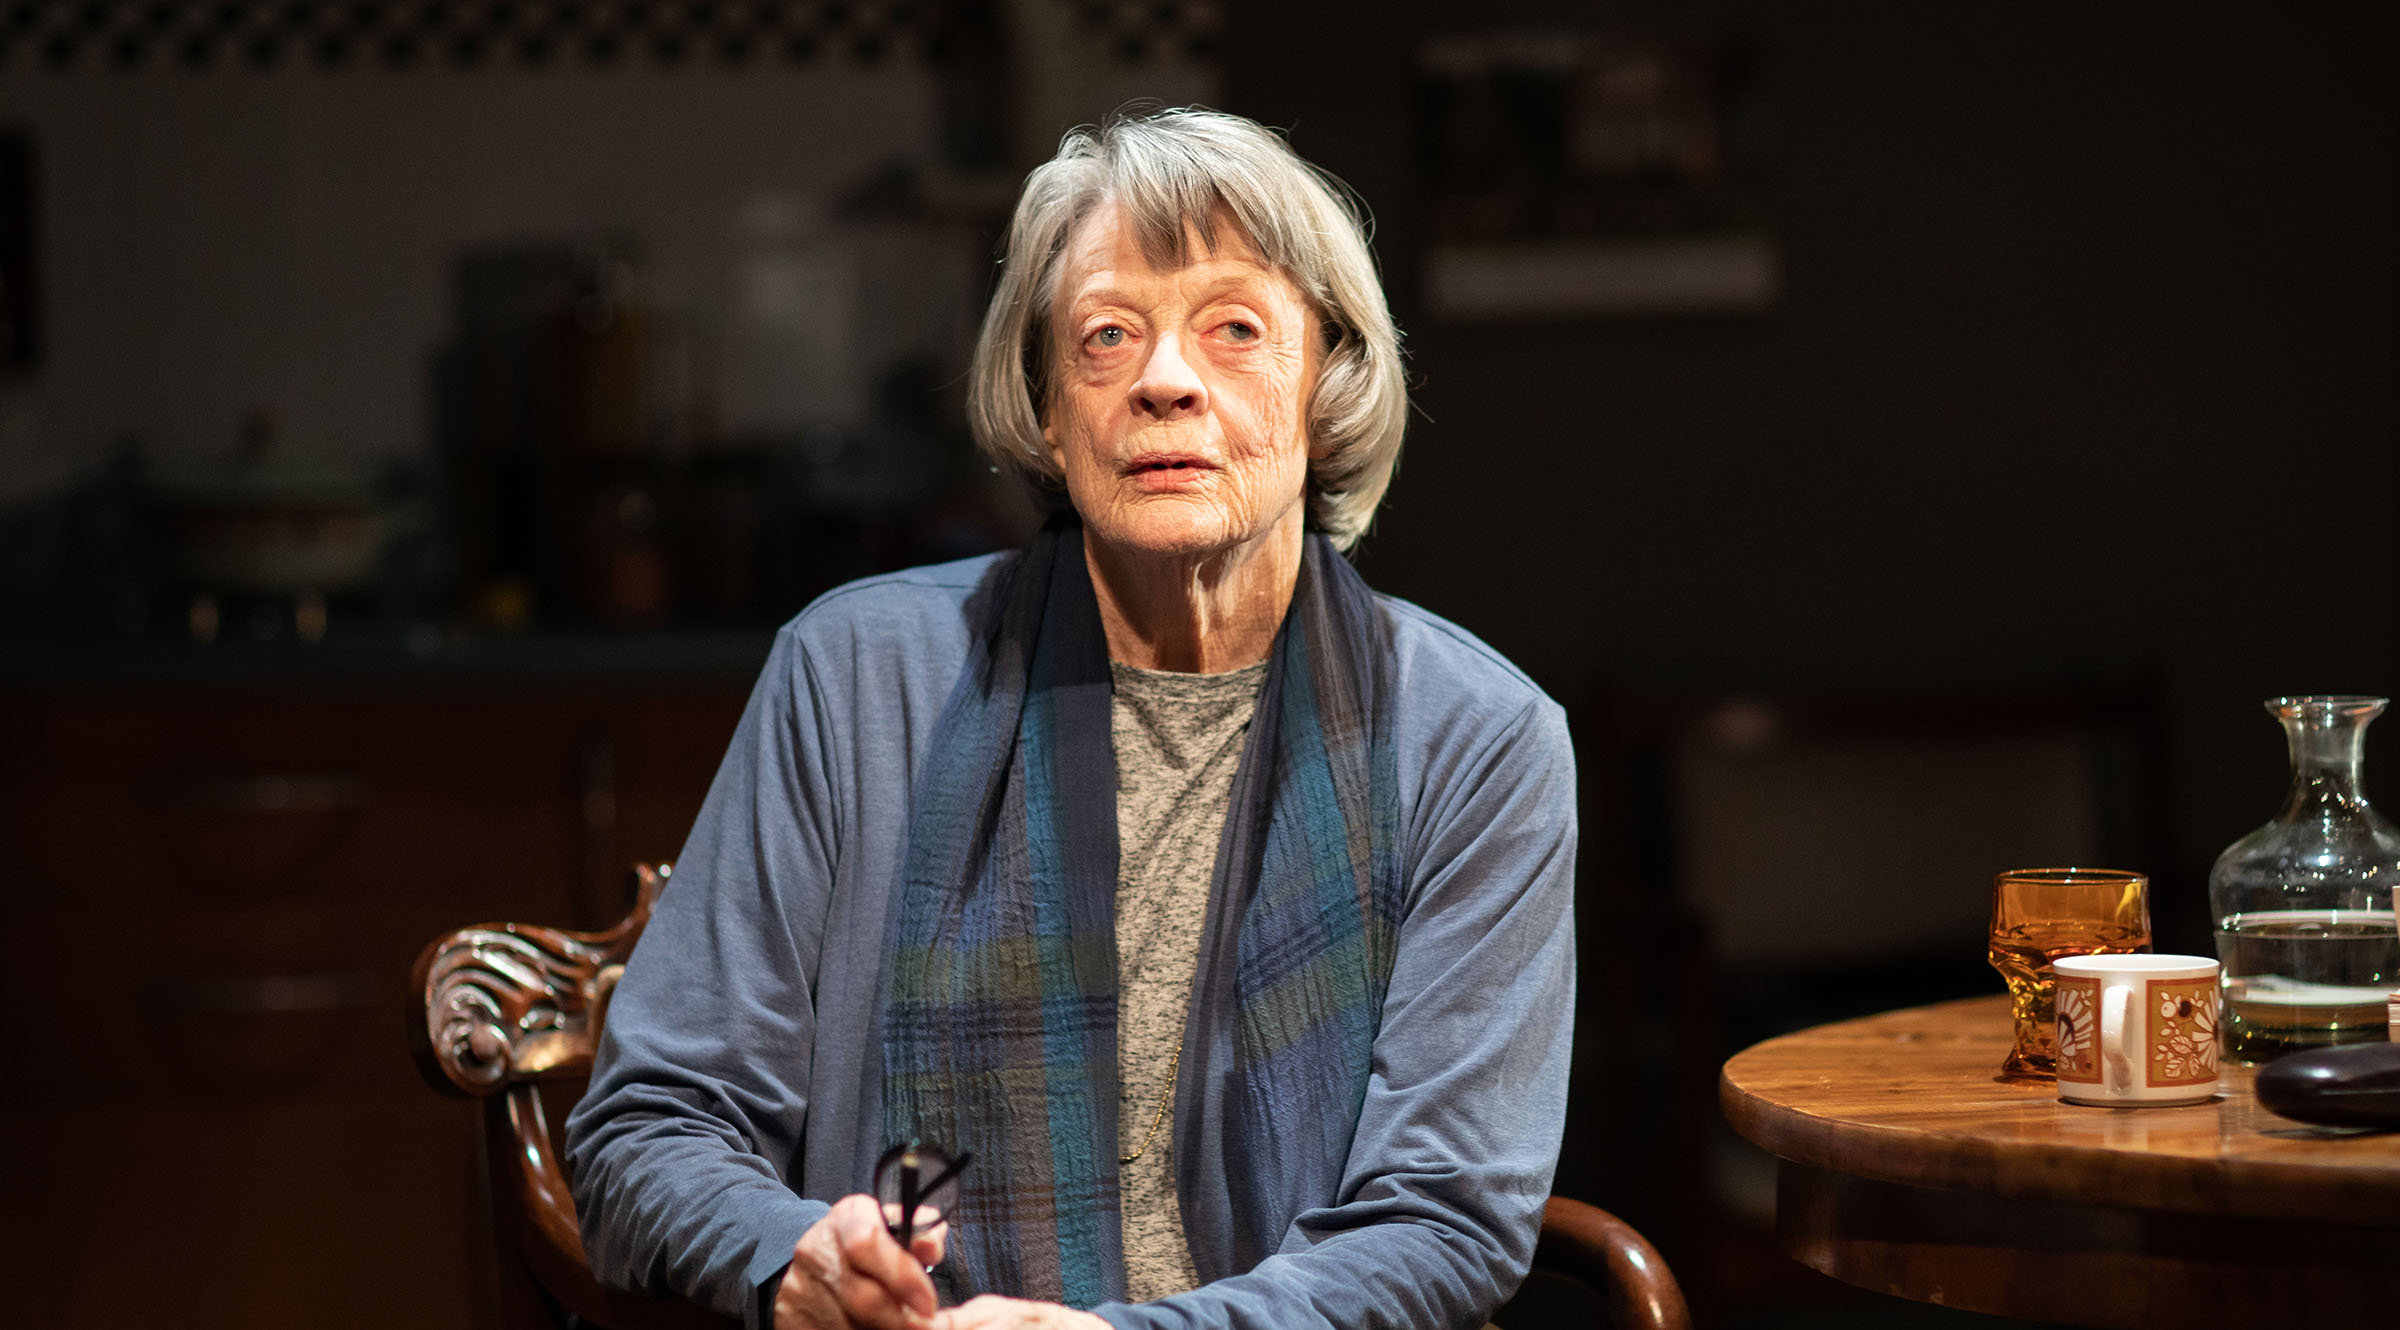 Dame Maggie Smith in 'A German Life'